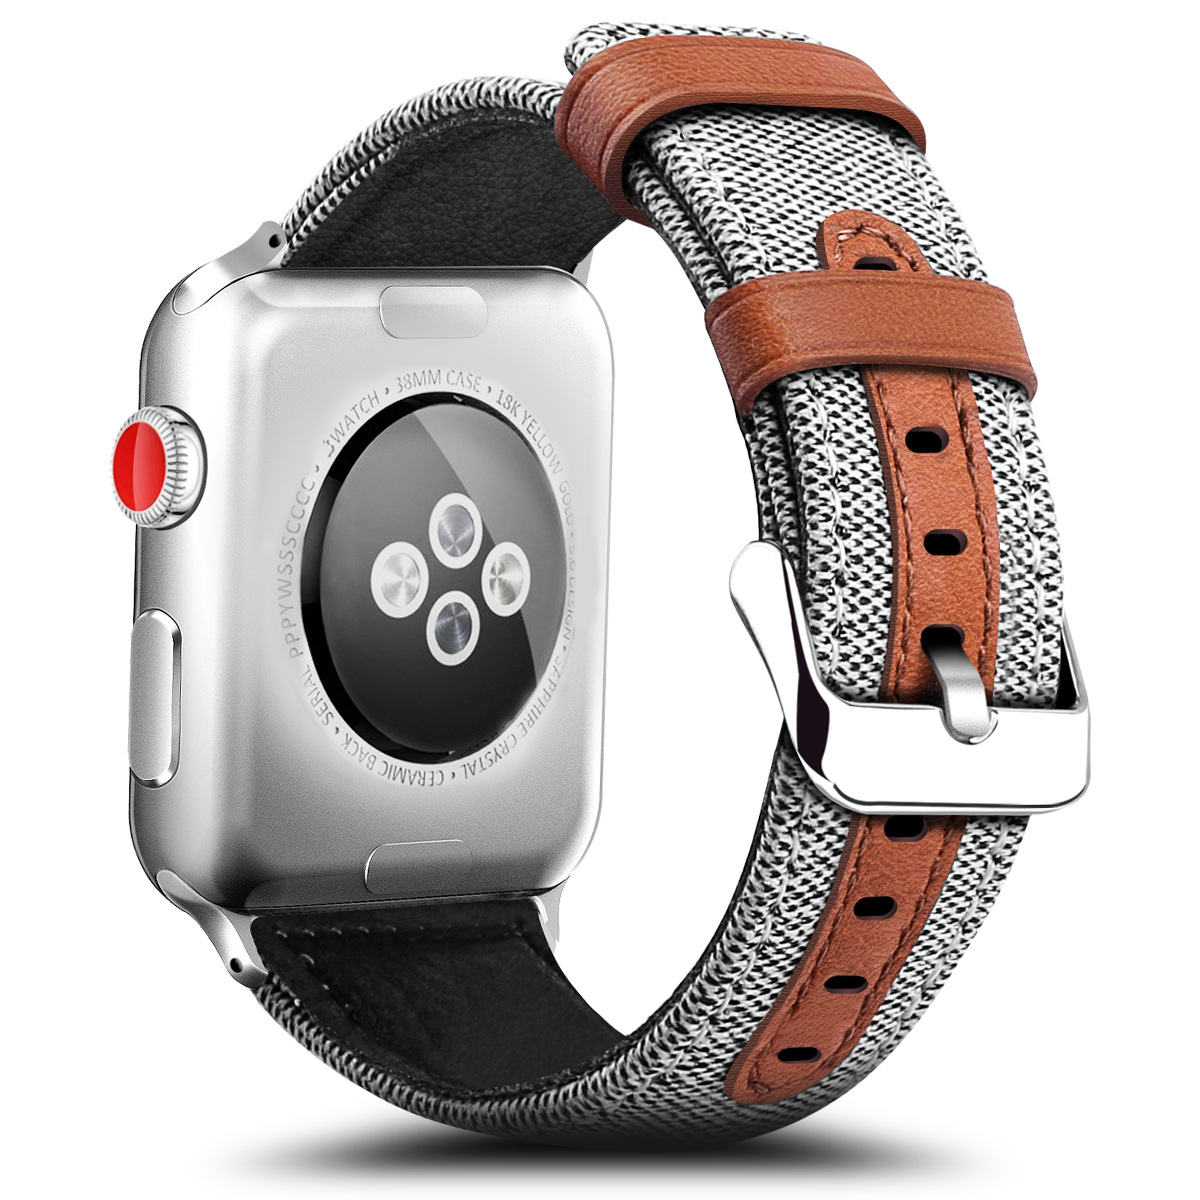 Fashion Fabric And Leather Material Band For Apple Watch 38mm 42mm For IWatch 40mm 44mm Series 2 3 4 5 Strap Watchband Bracelet